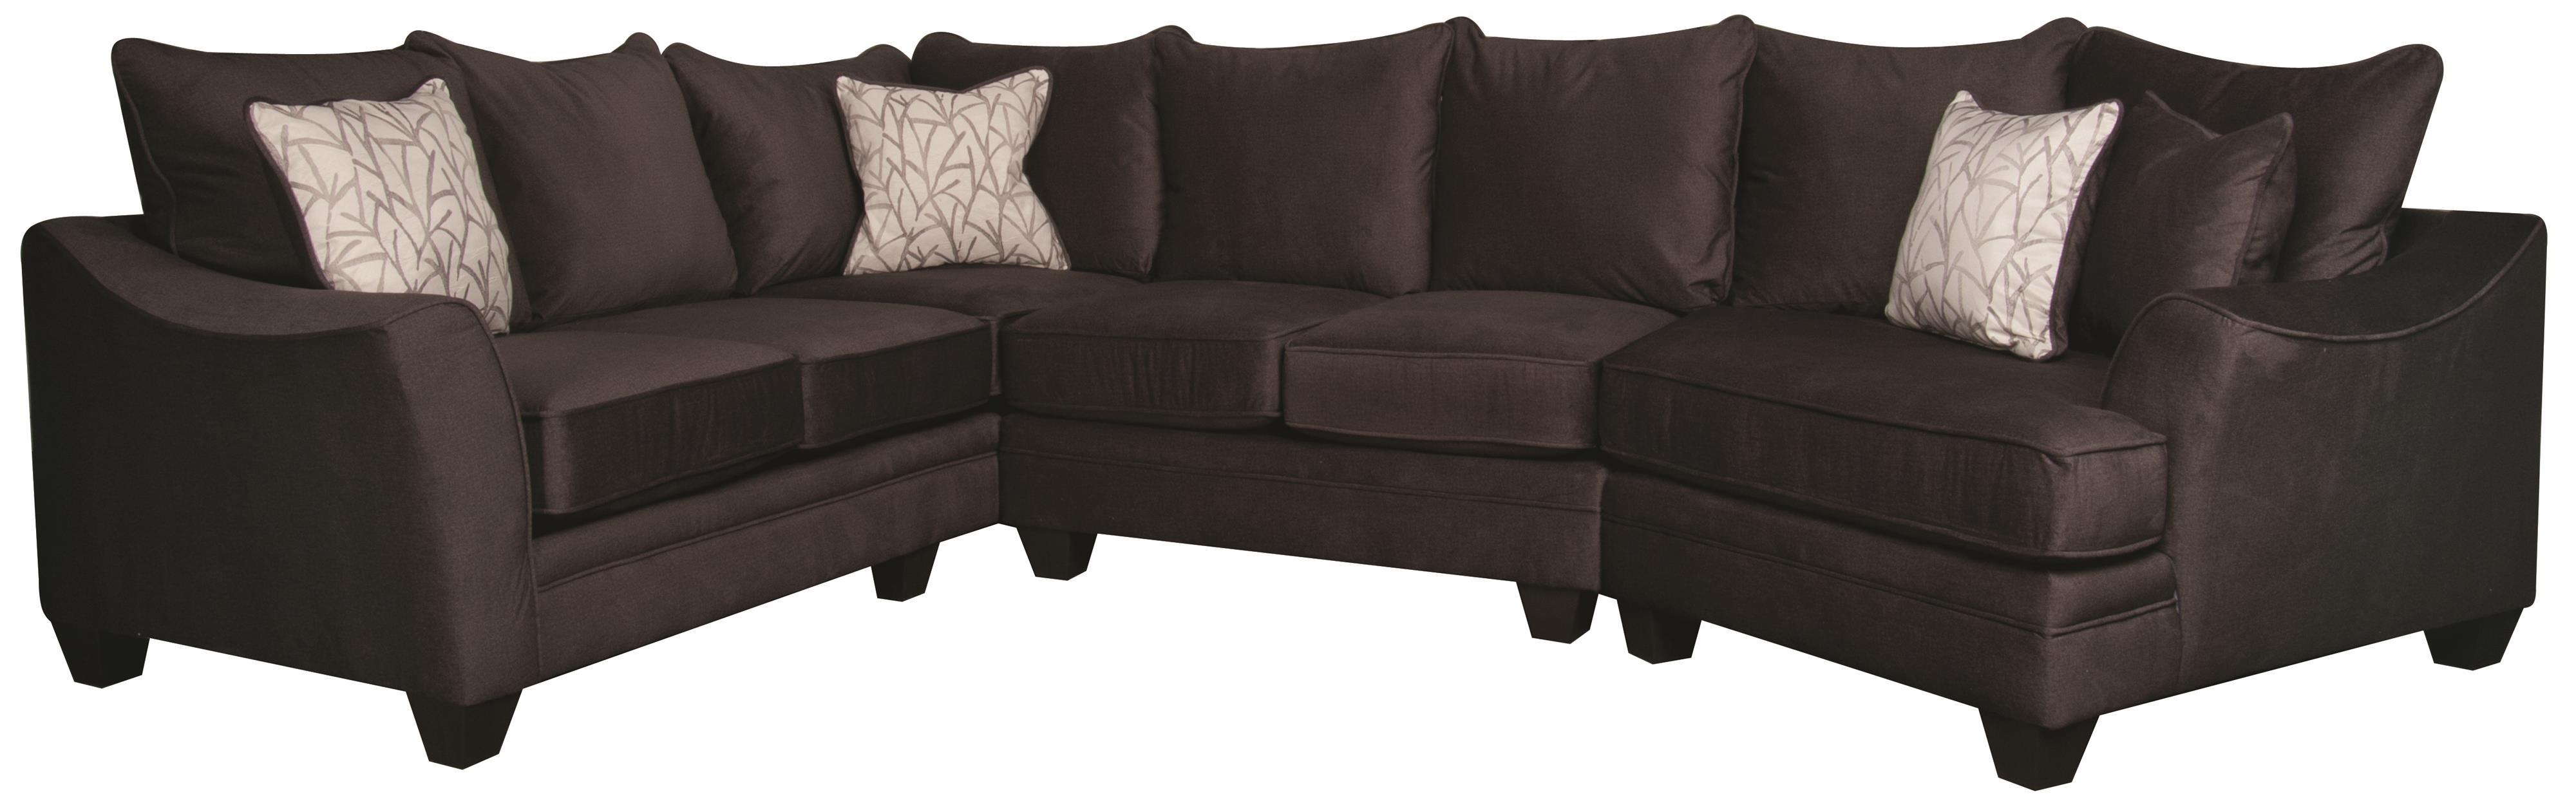 Rachel Modern Sectional Sofa